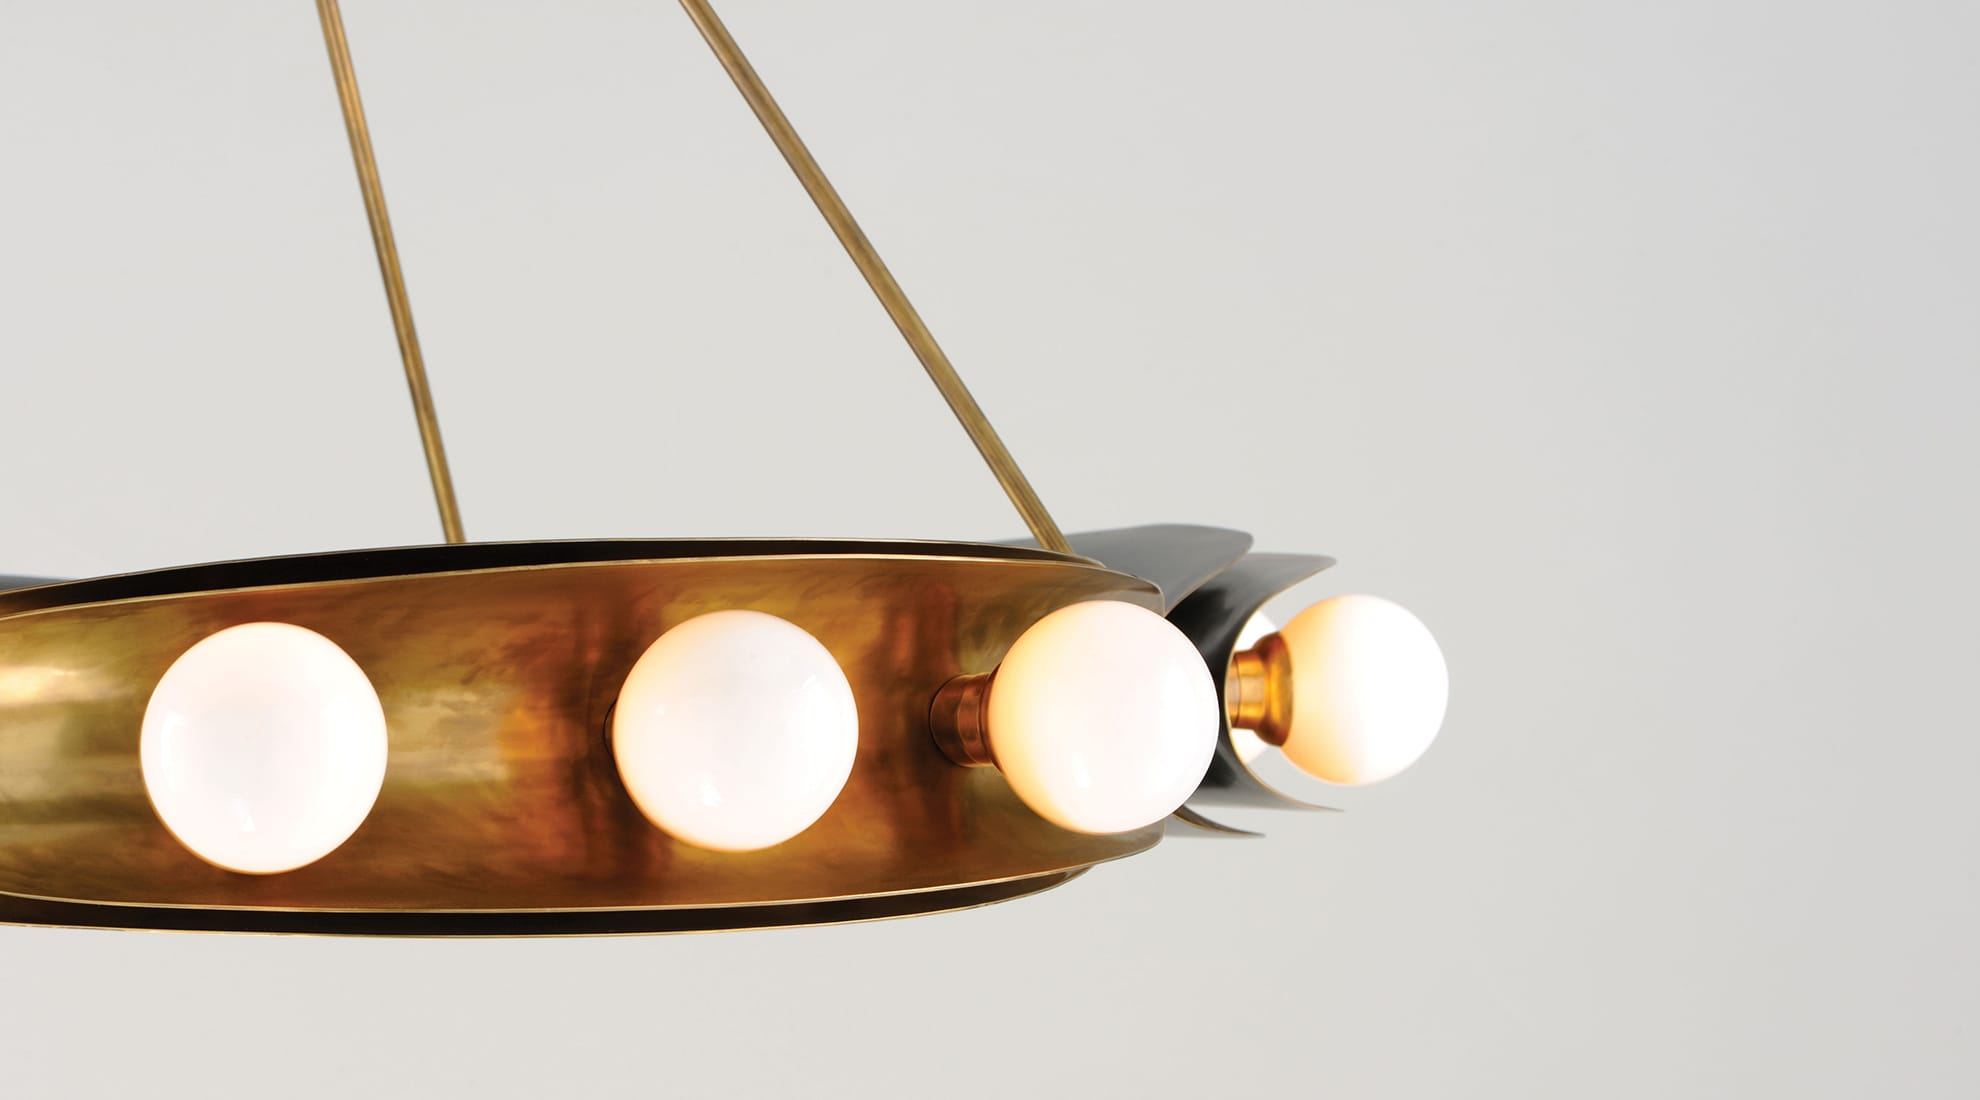 Martyn Lawrence Bullard's Hopper Chandelier for Corbett Lighting